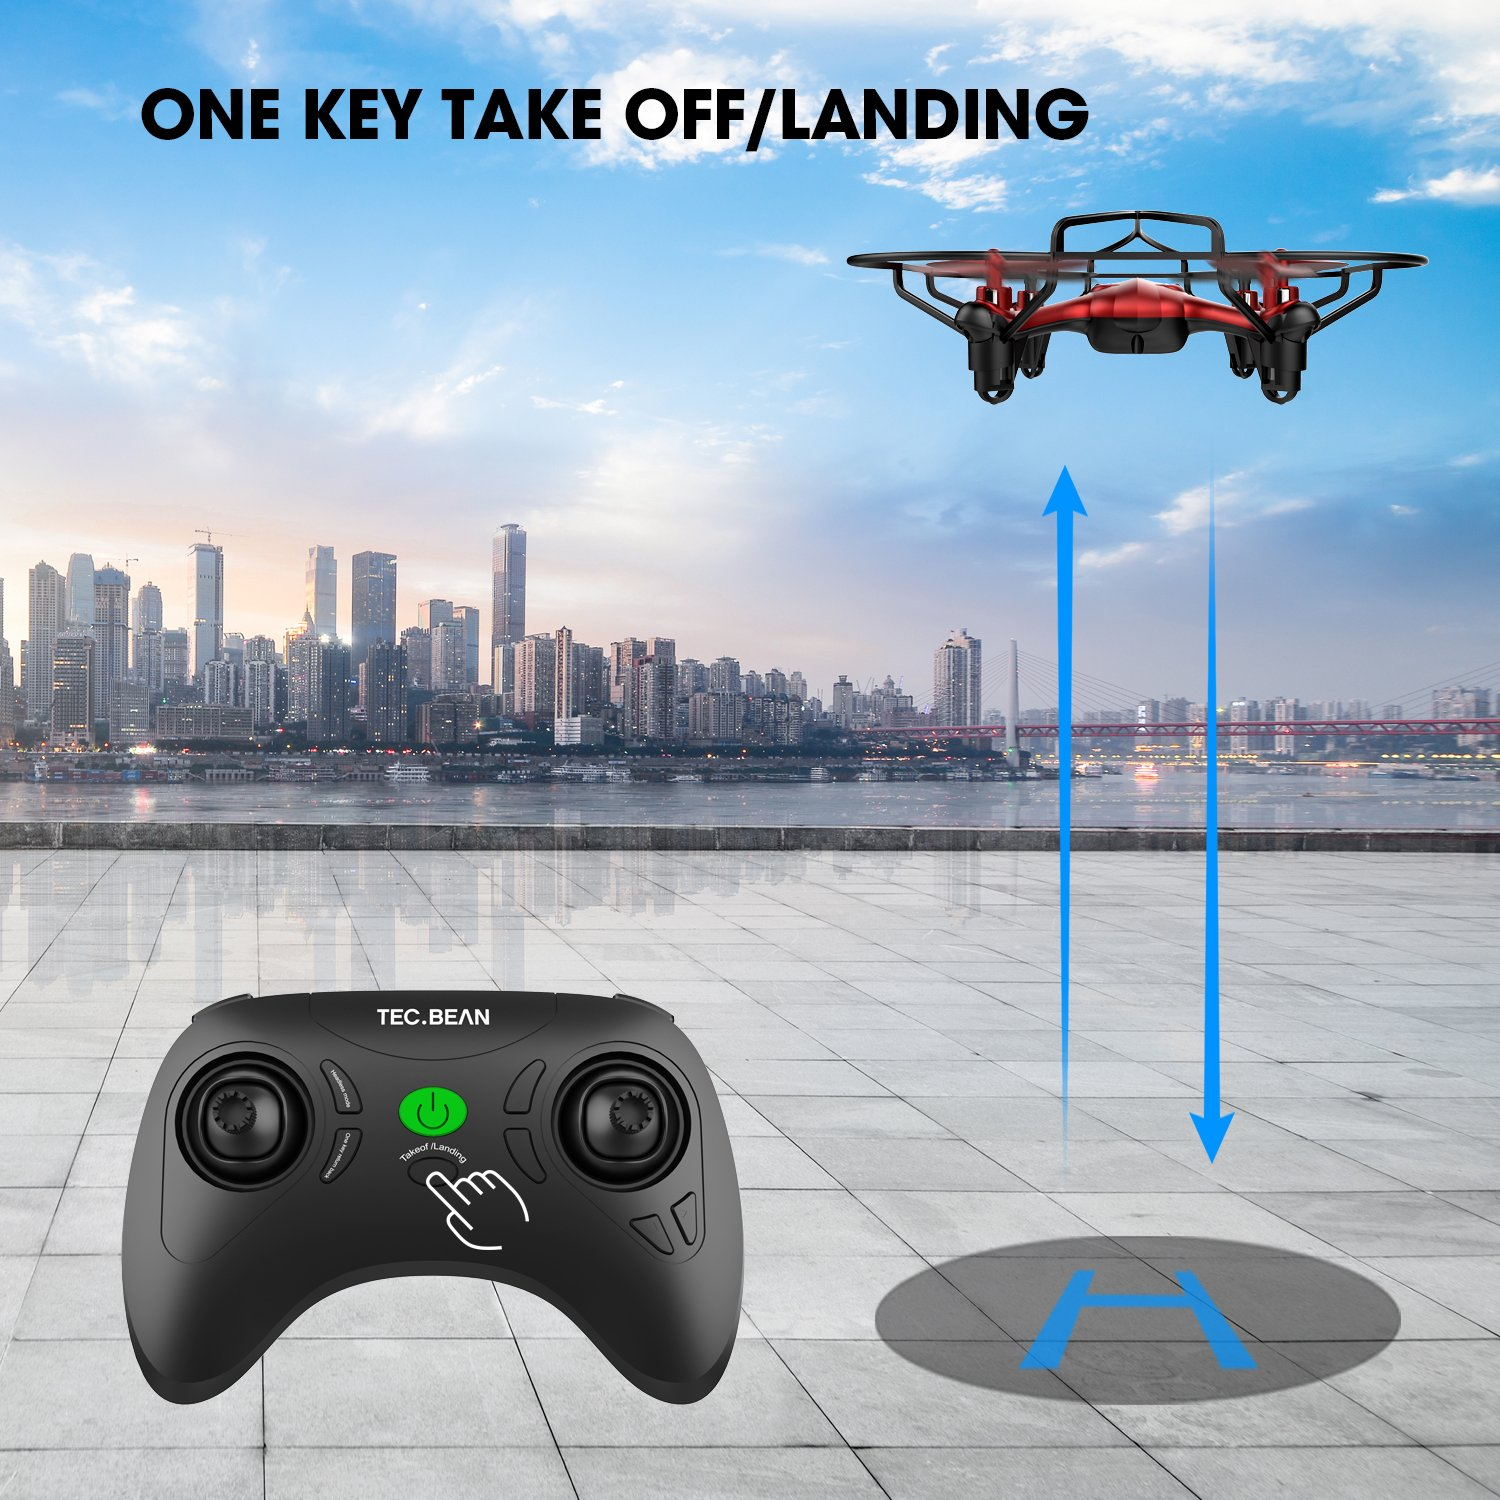 TEC.BEAN Mini Drone for Beginners Hovering Quadcopter with Altitude Hold Mode One Key Take Off Landing Return Home Entry Level for Kids by TEC.BEAN (Image #7)